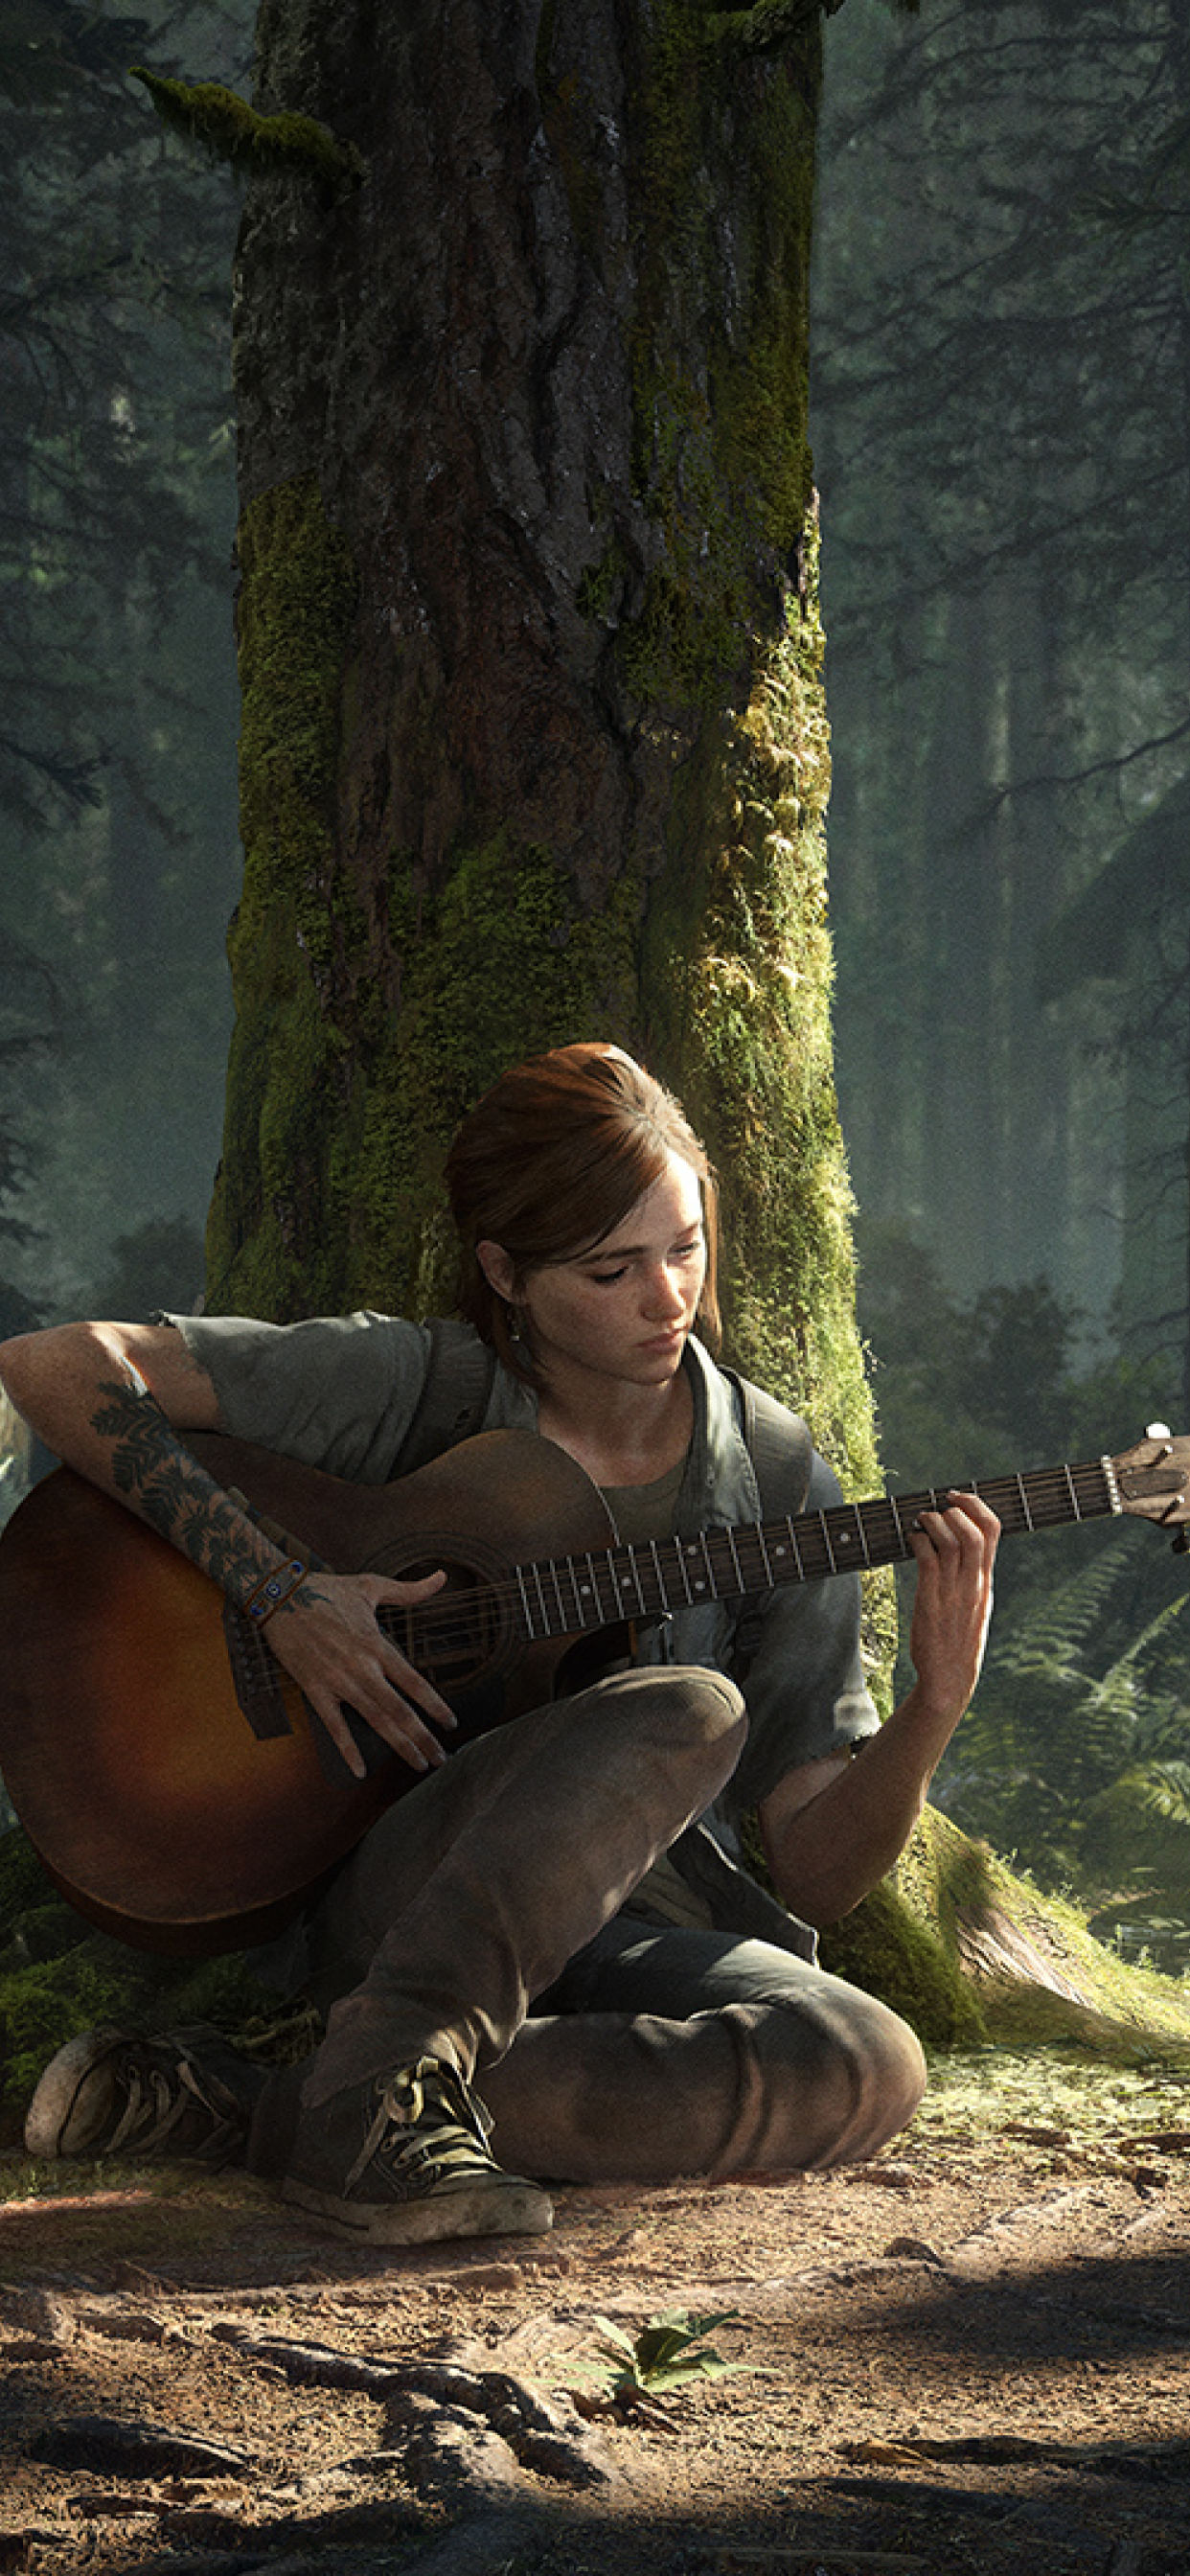 1242x2688 Ellie The Last of Us 2 Iphone XS MAX Wallpaper ...